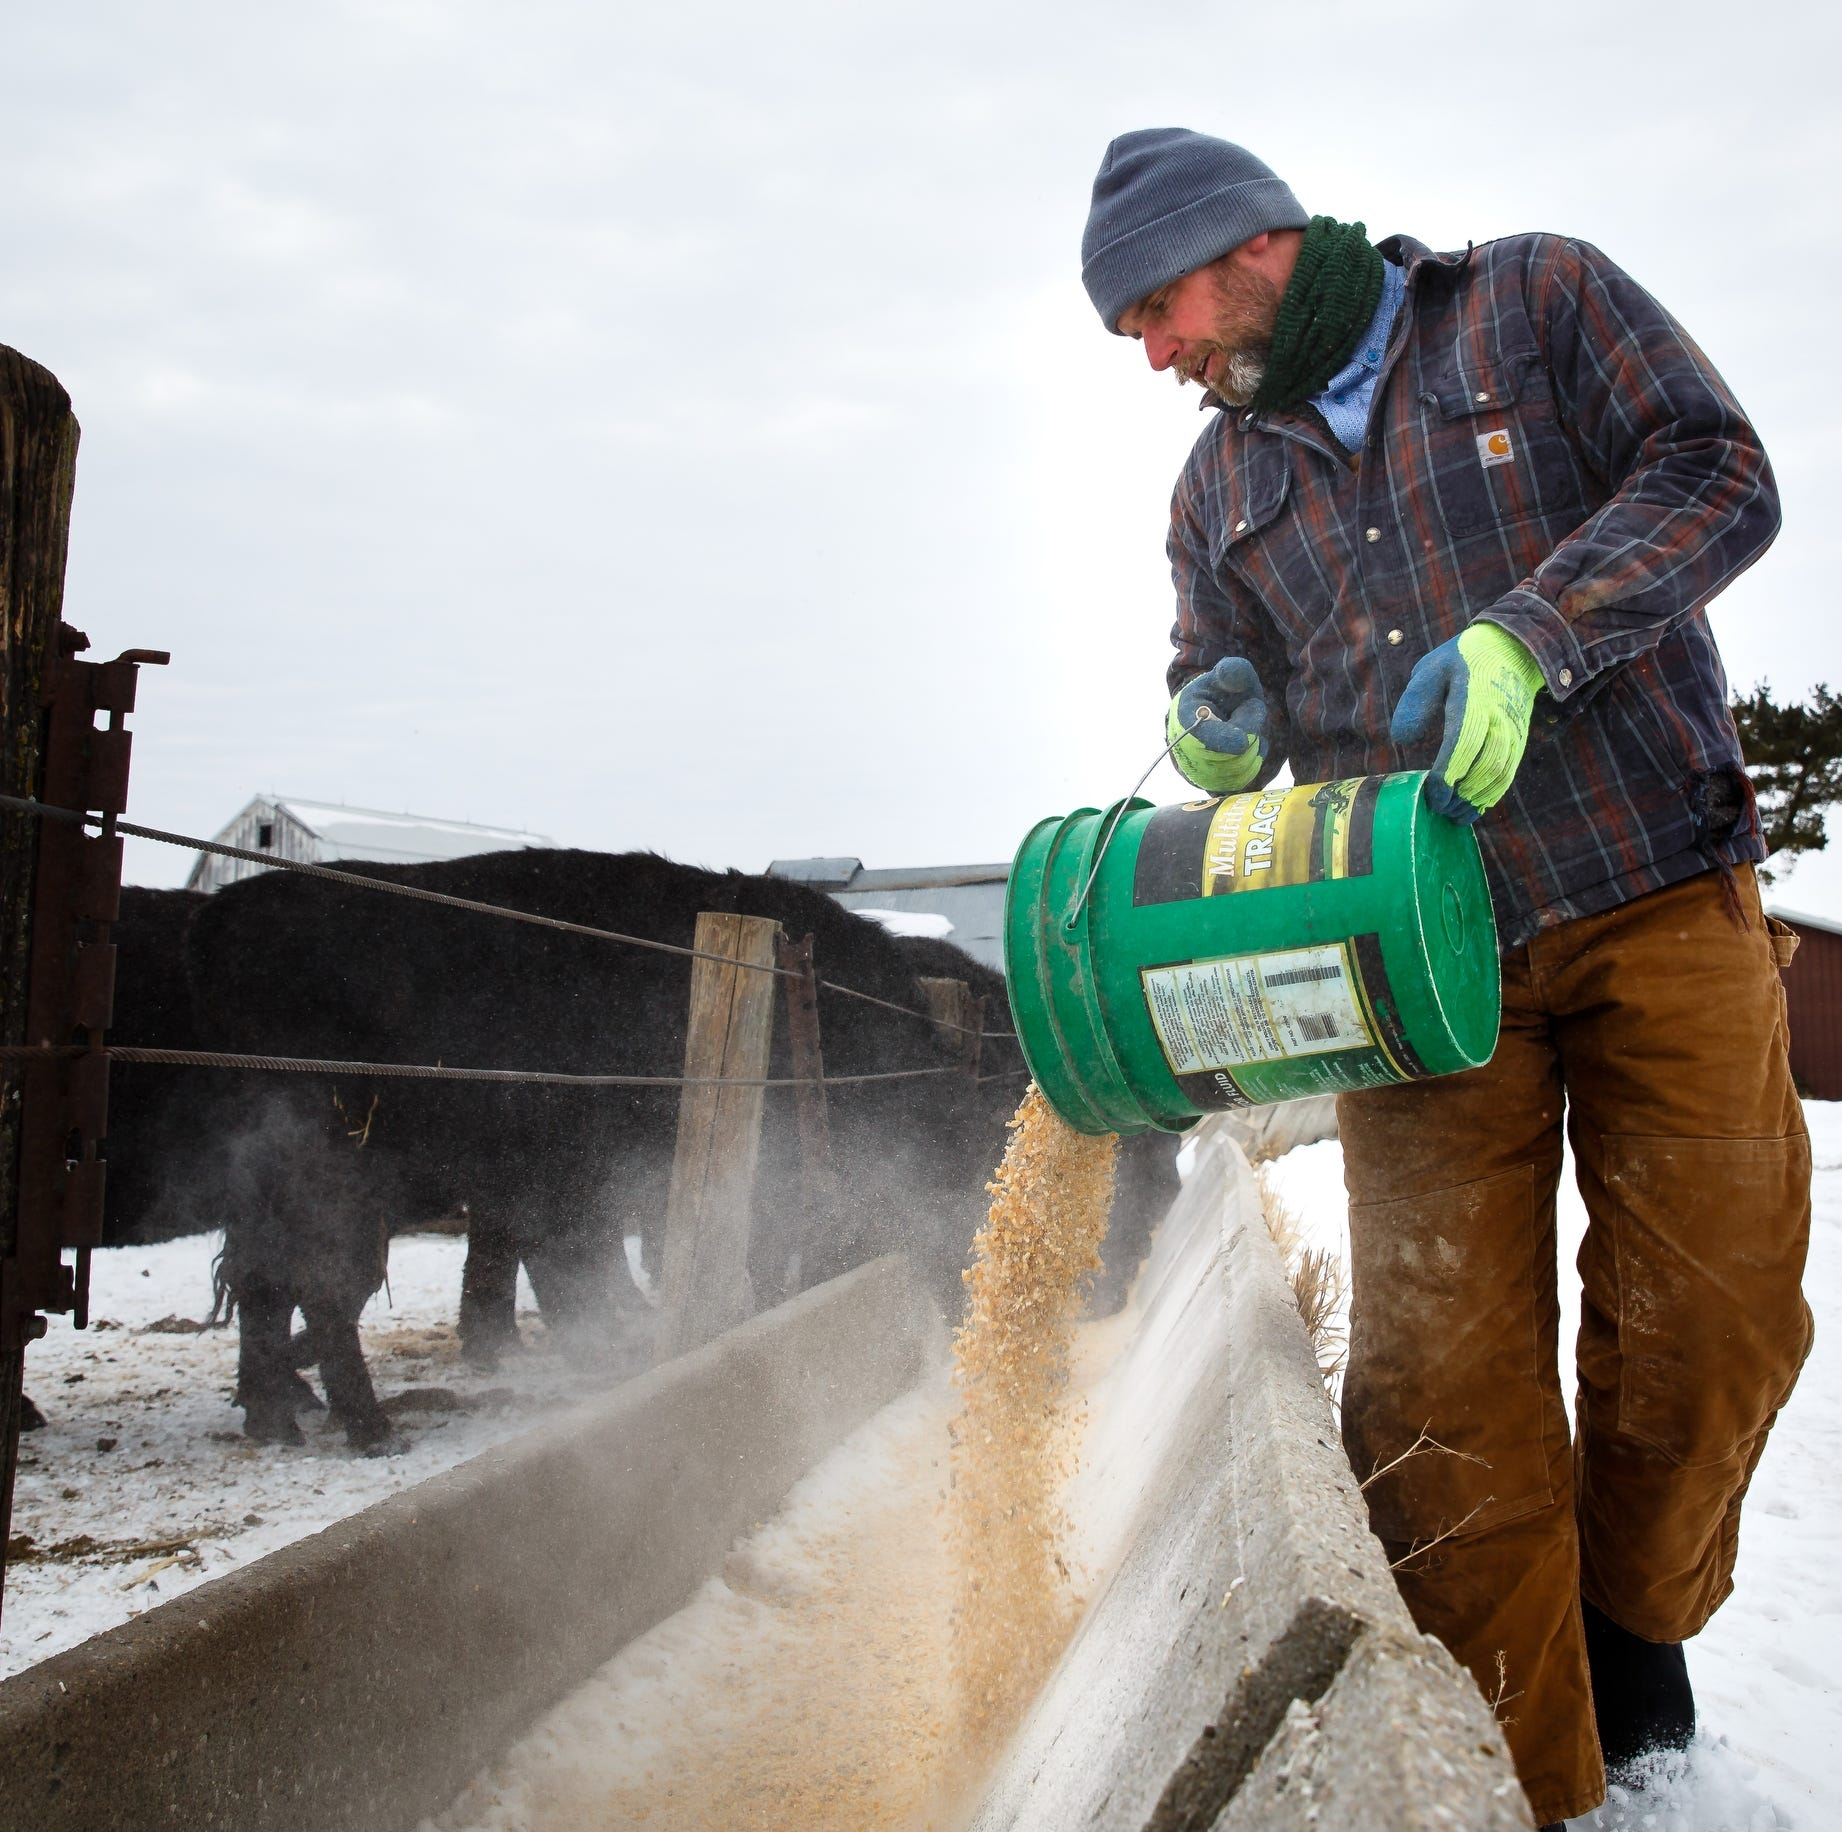 Iowa farmers battle bitter cold, 15-foot snow drifts to care for animals